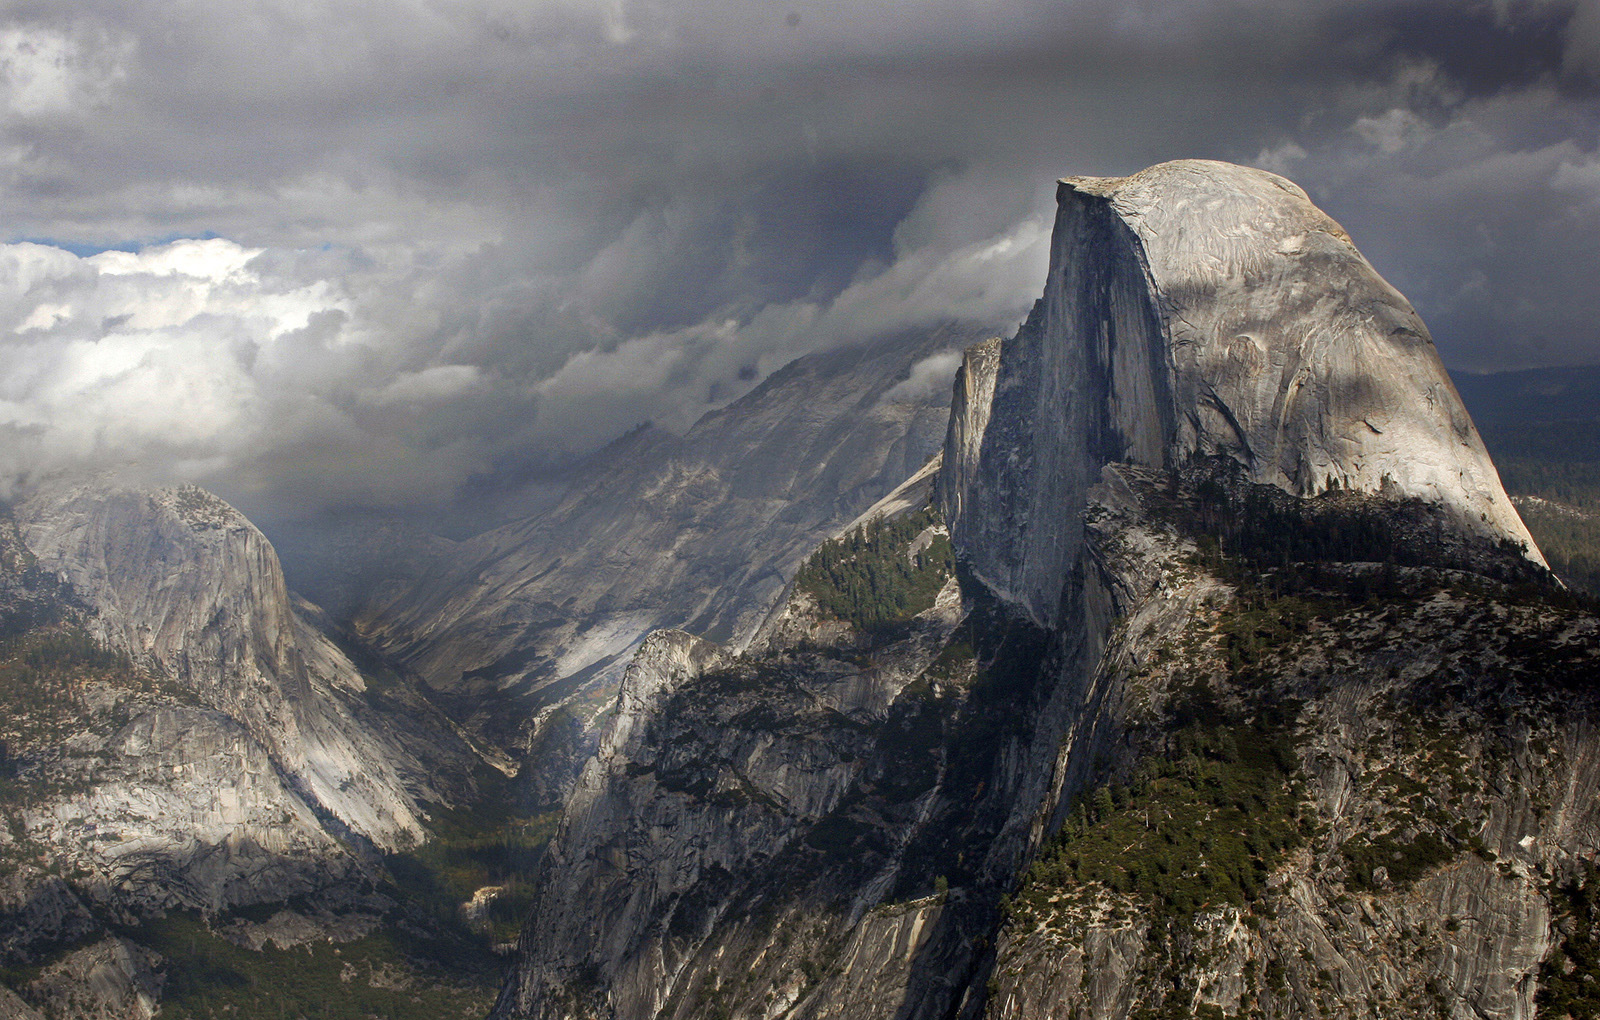 Stormy Weather over Half Dome